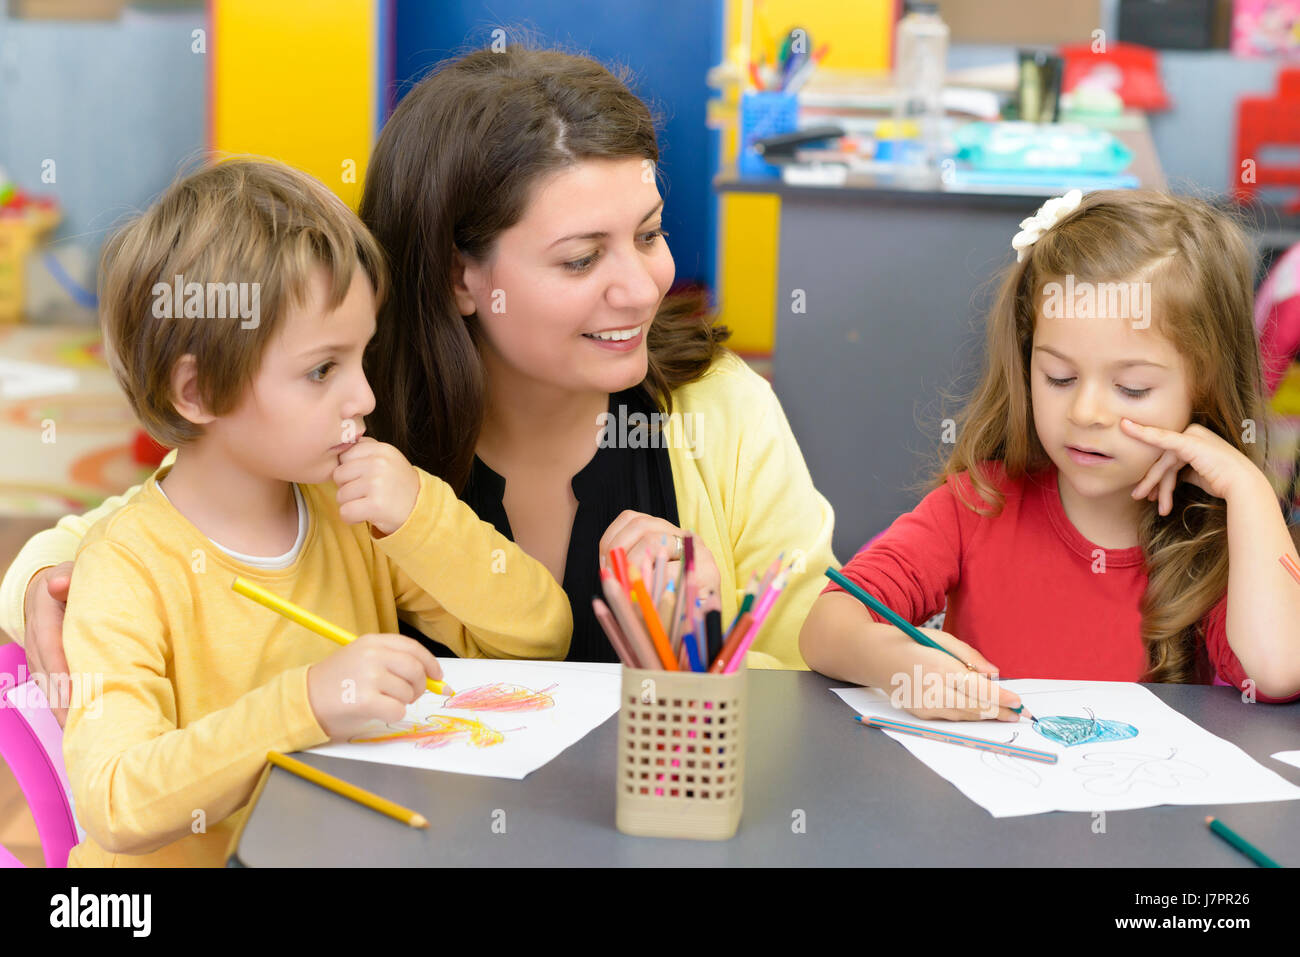 Kids drawing at kindergarten being supervised by educator - Stock Image